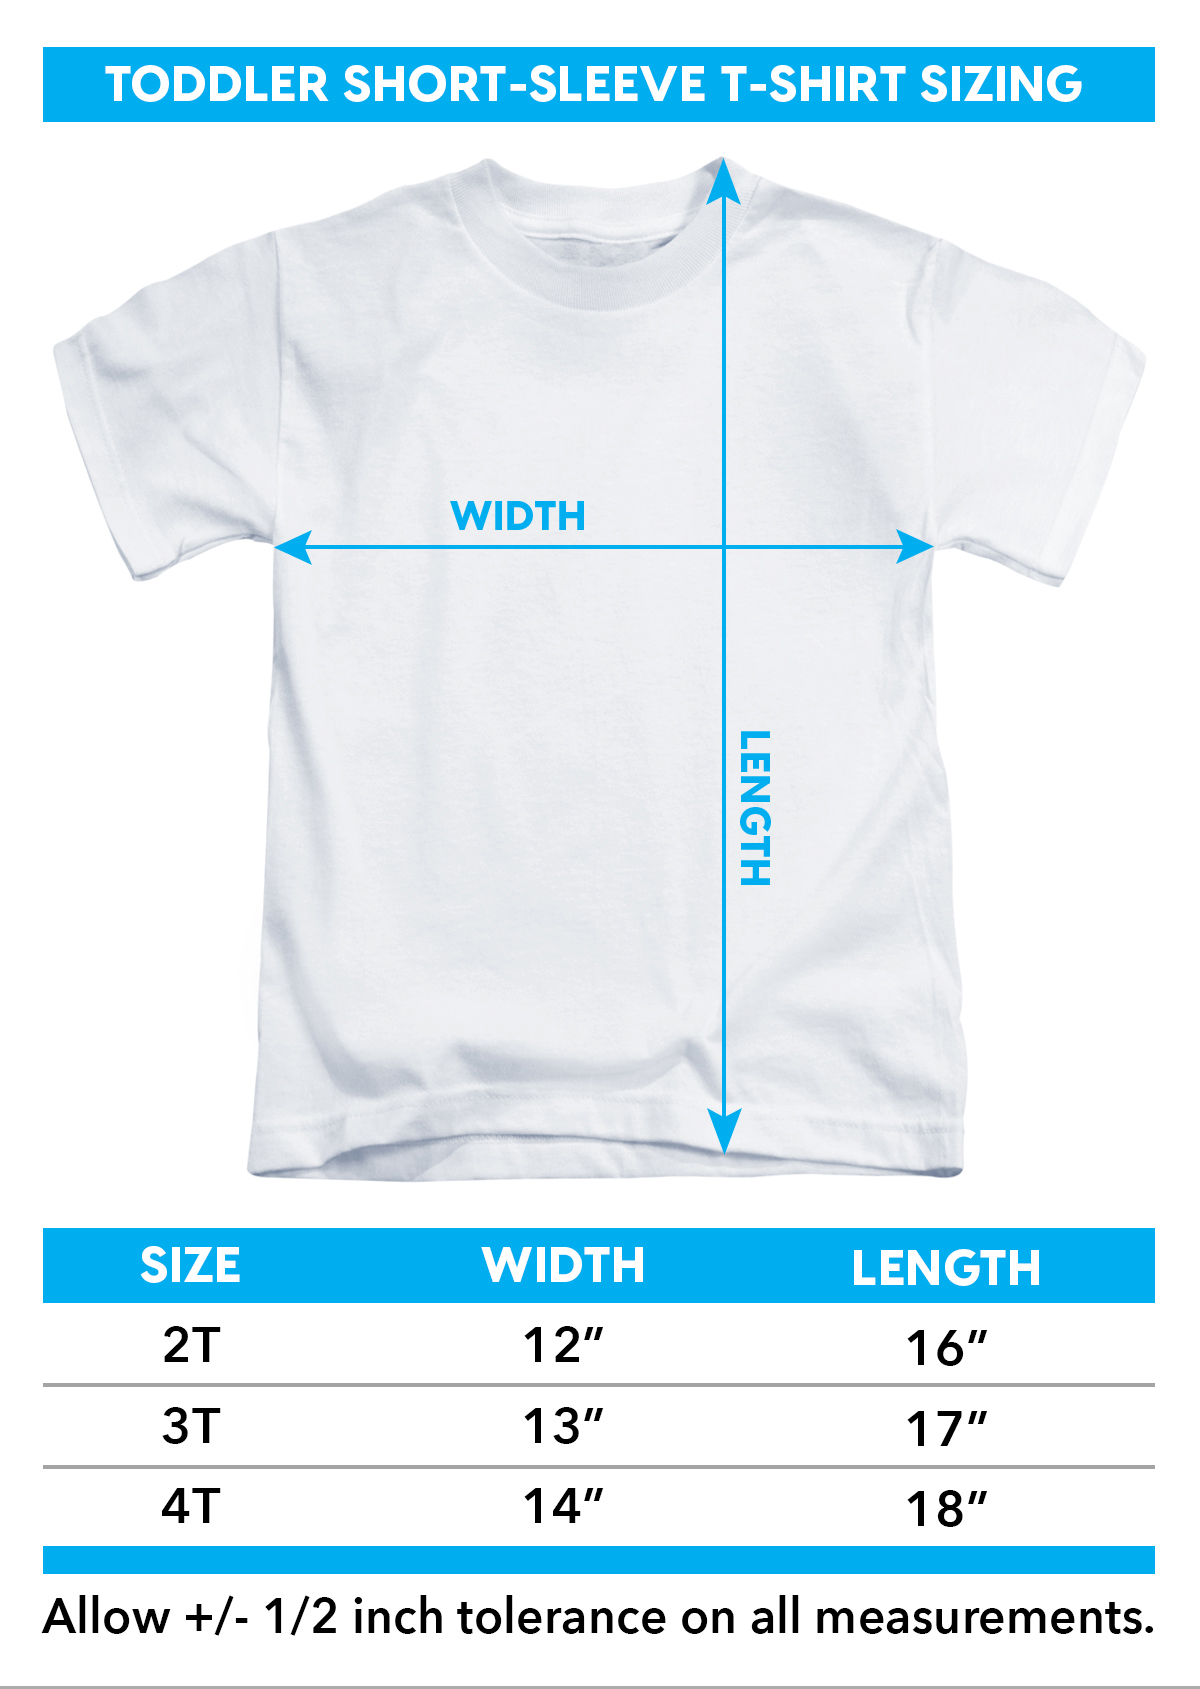 Sizing Chart for Power Rangers Toddler T-Shirt - Rangers Unite